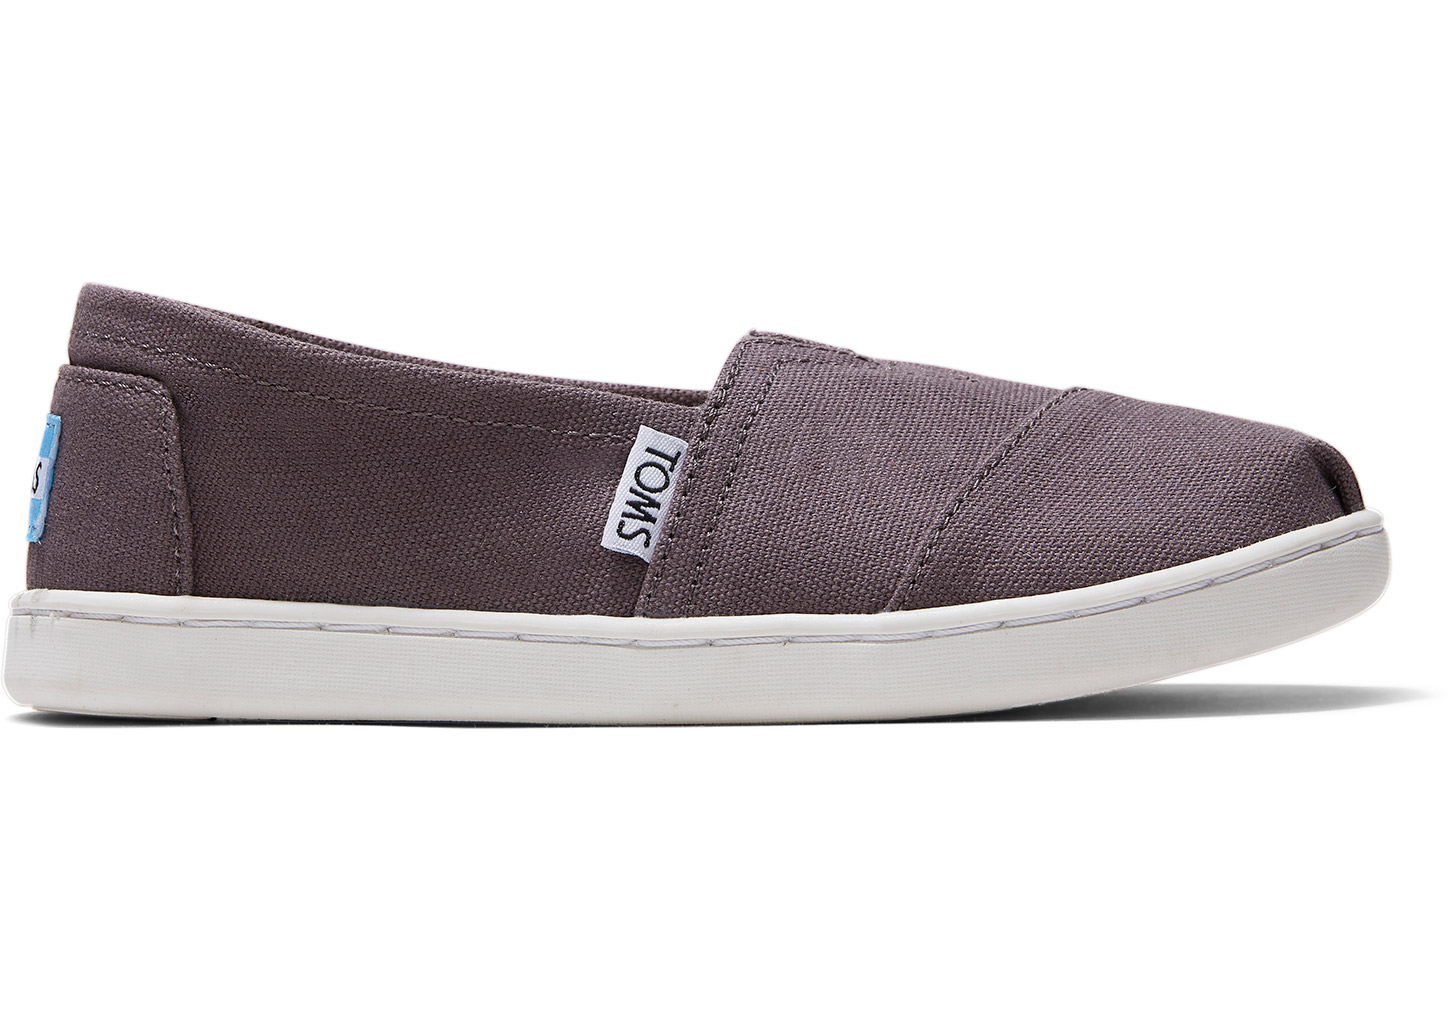 Ash Canvas TOMS Youth Classics 2.0 | TOMS